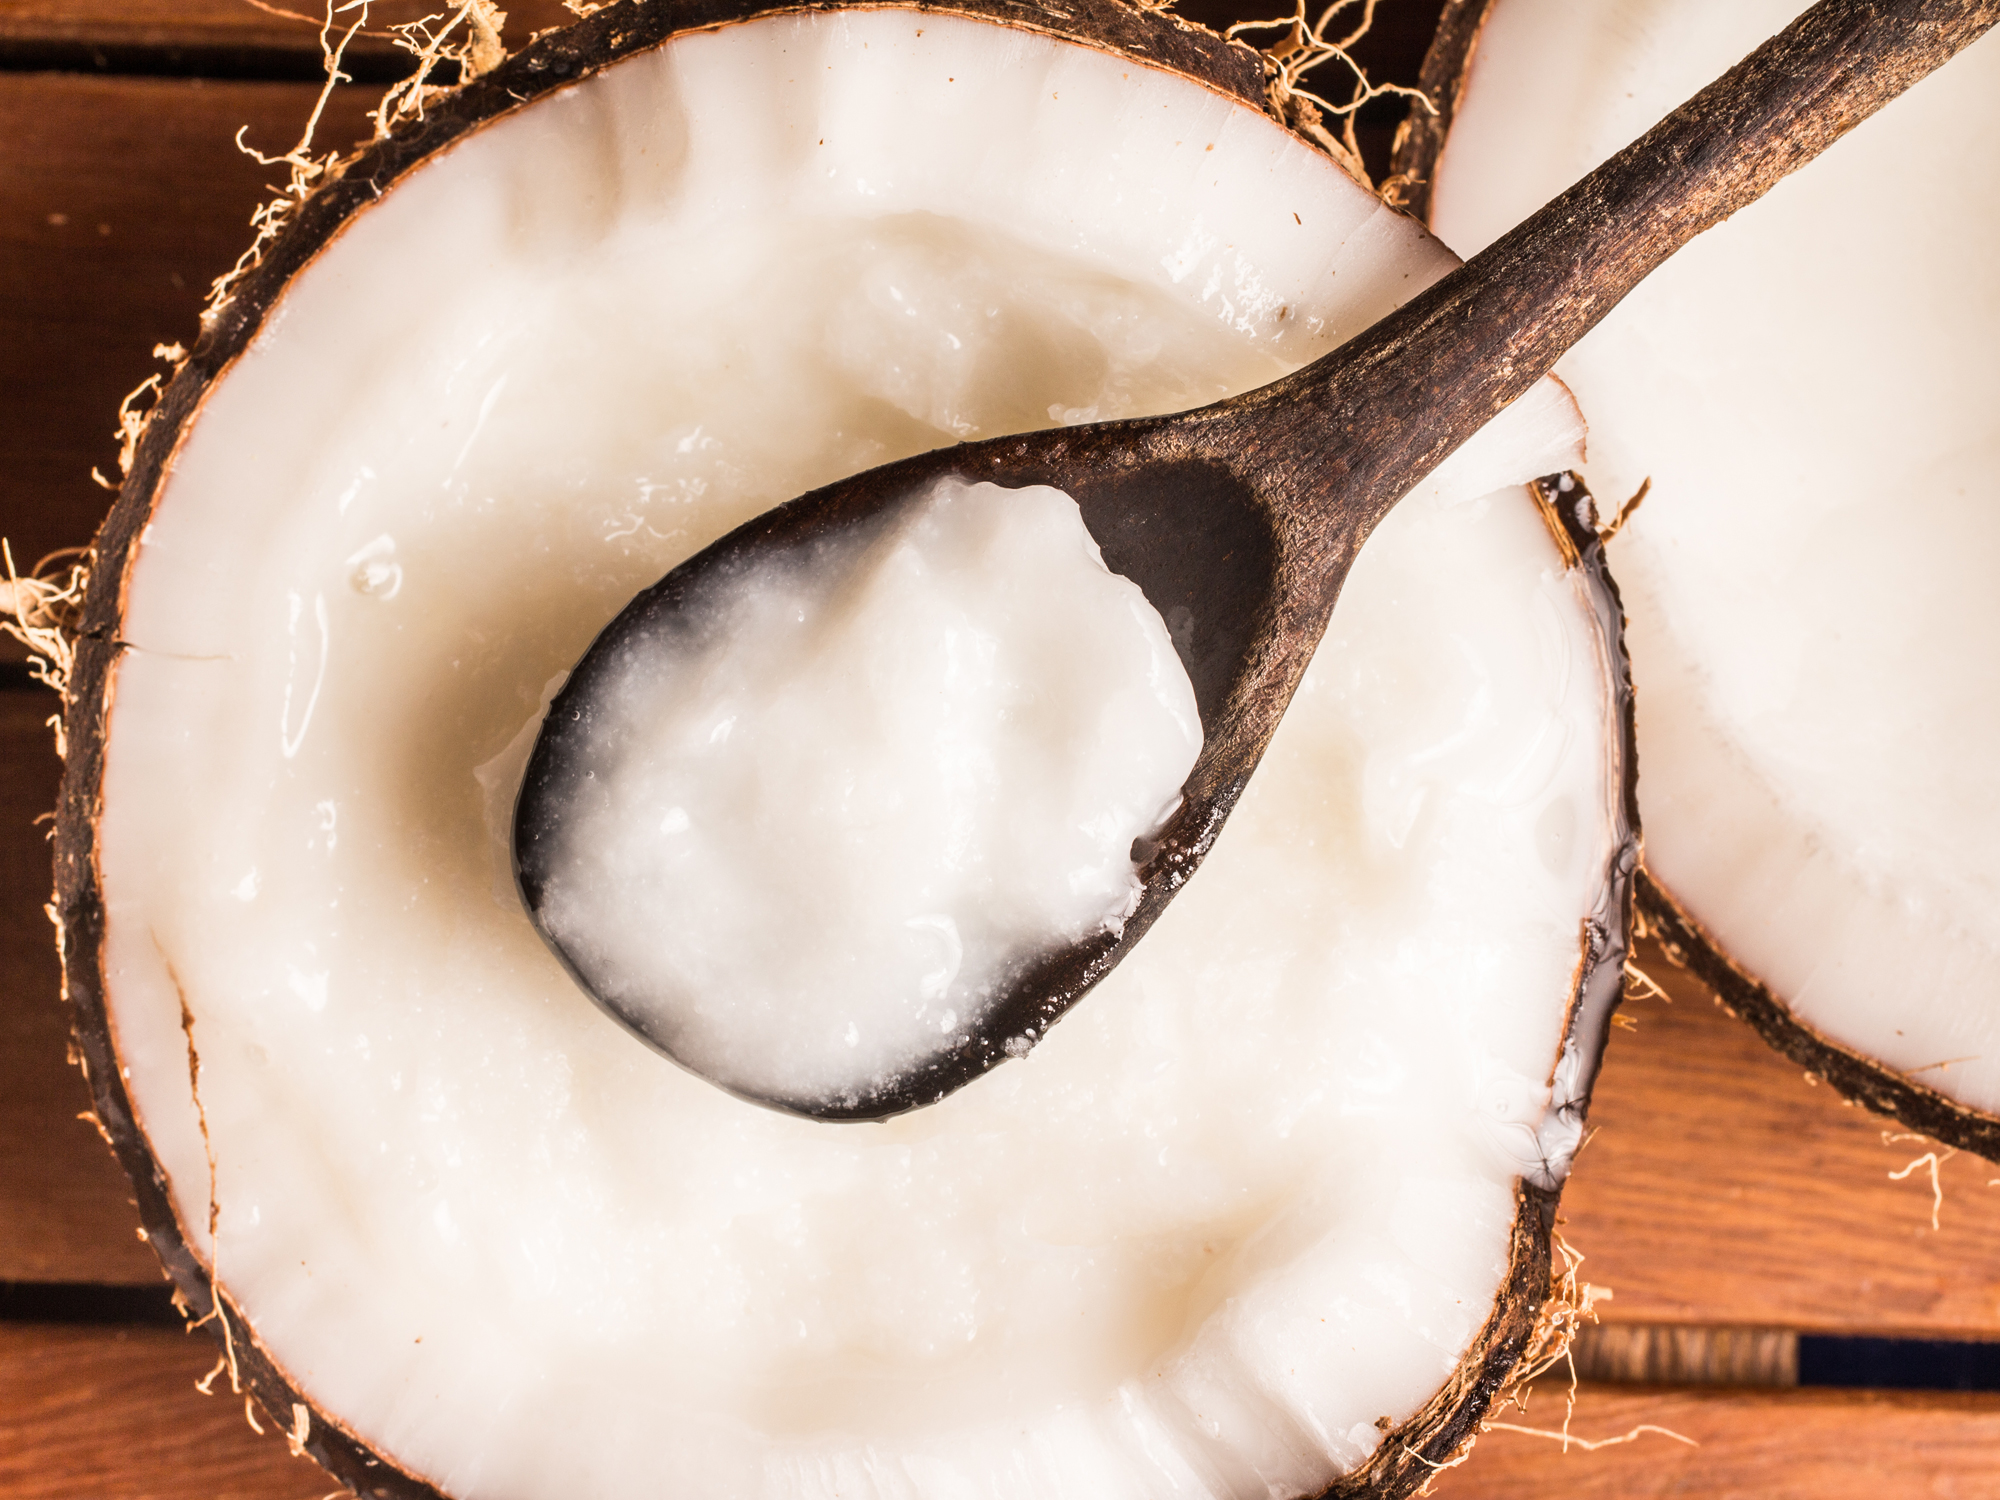 Why they are wrong about coconut oil